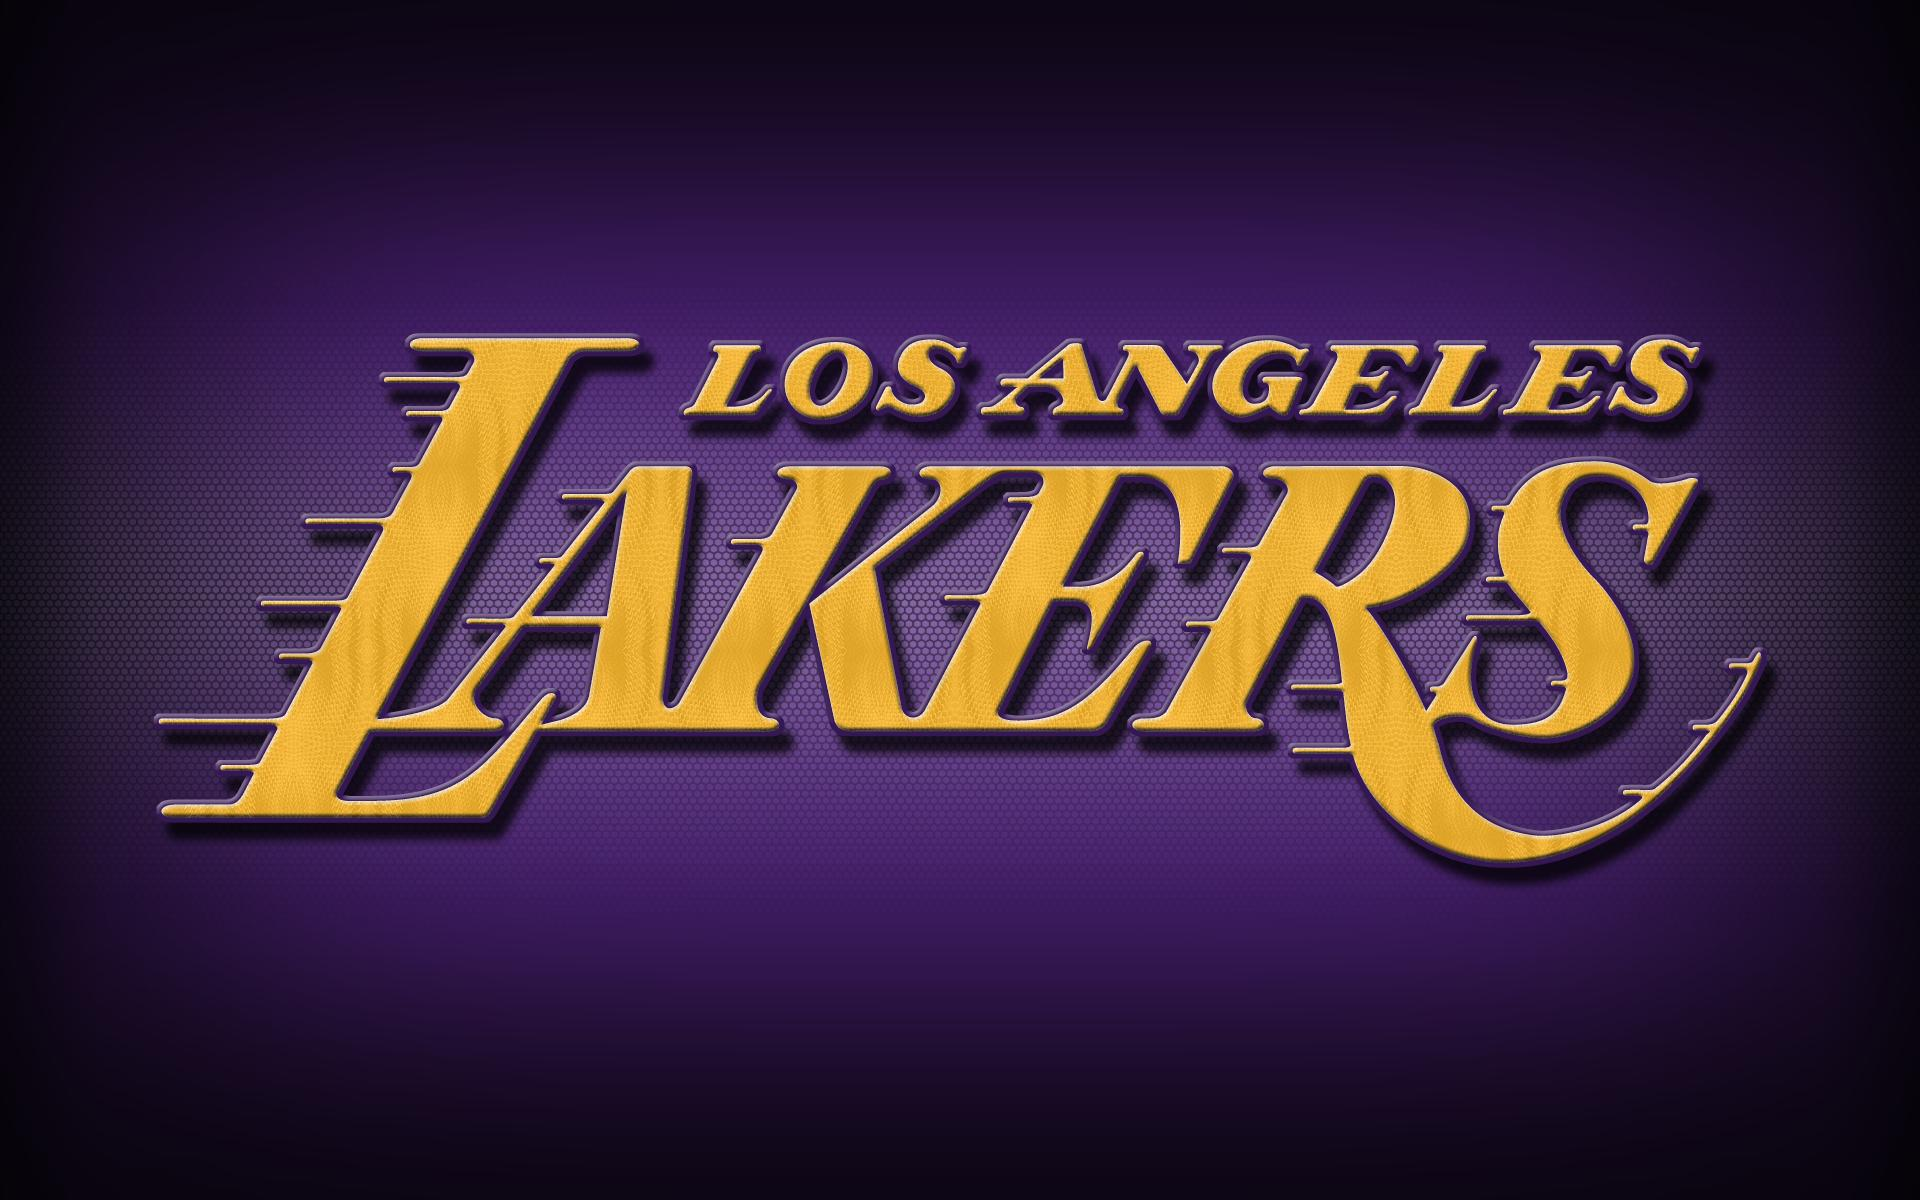 Los angeles lakers logo wallpapers hd media file pixelstalk los angeles lakers logo wallpapers hd voltagebd Images